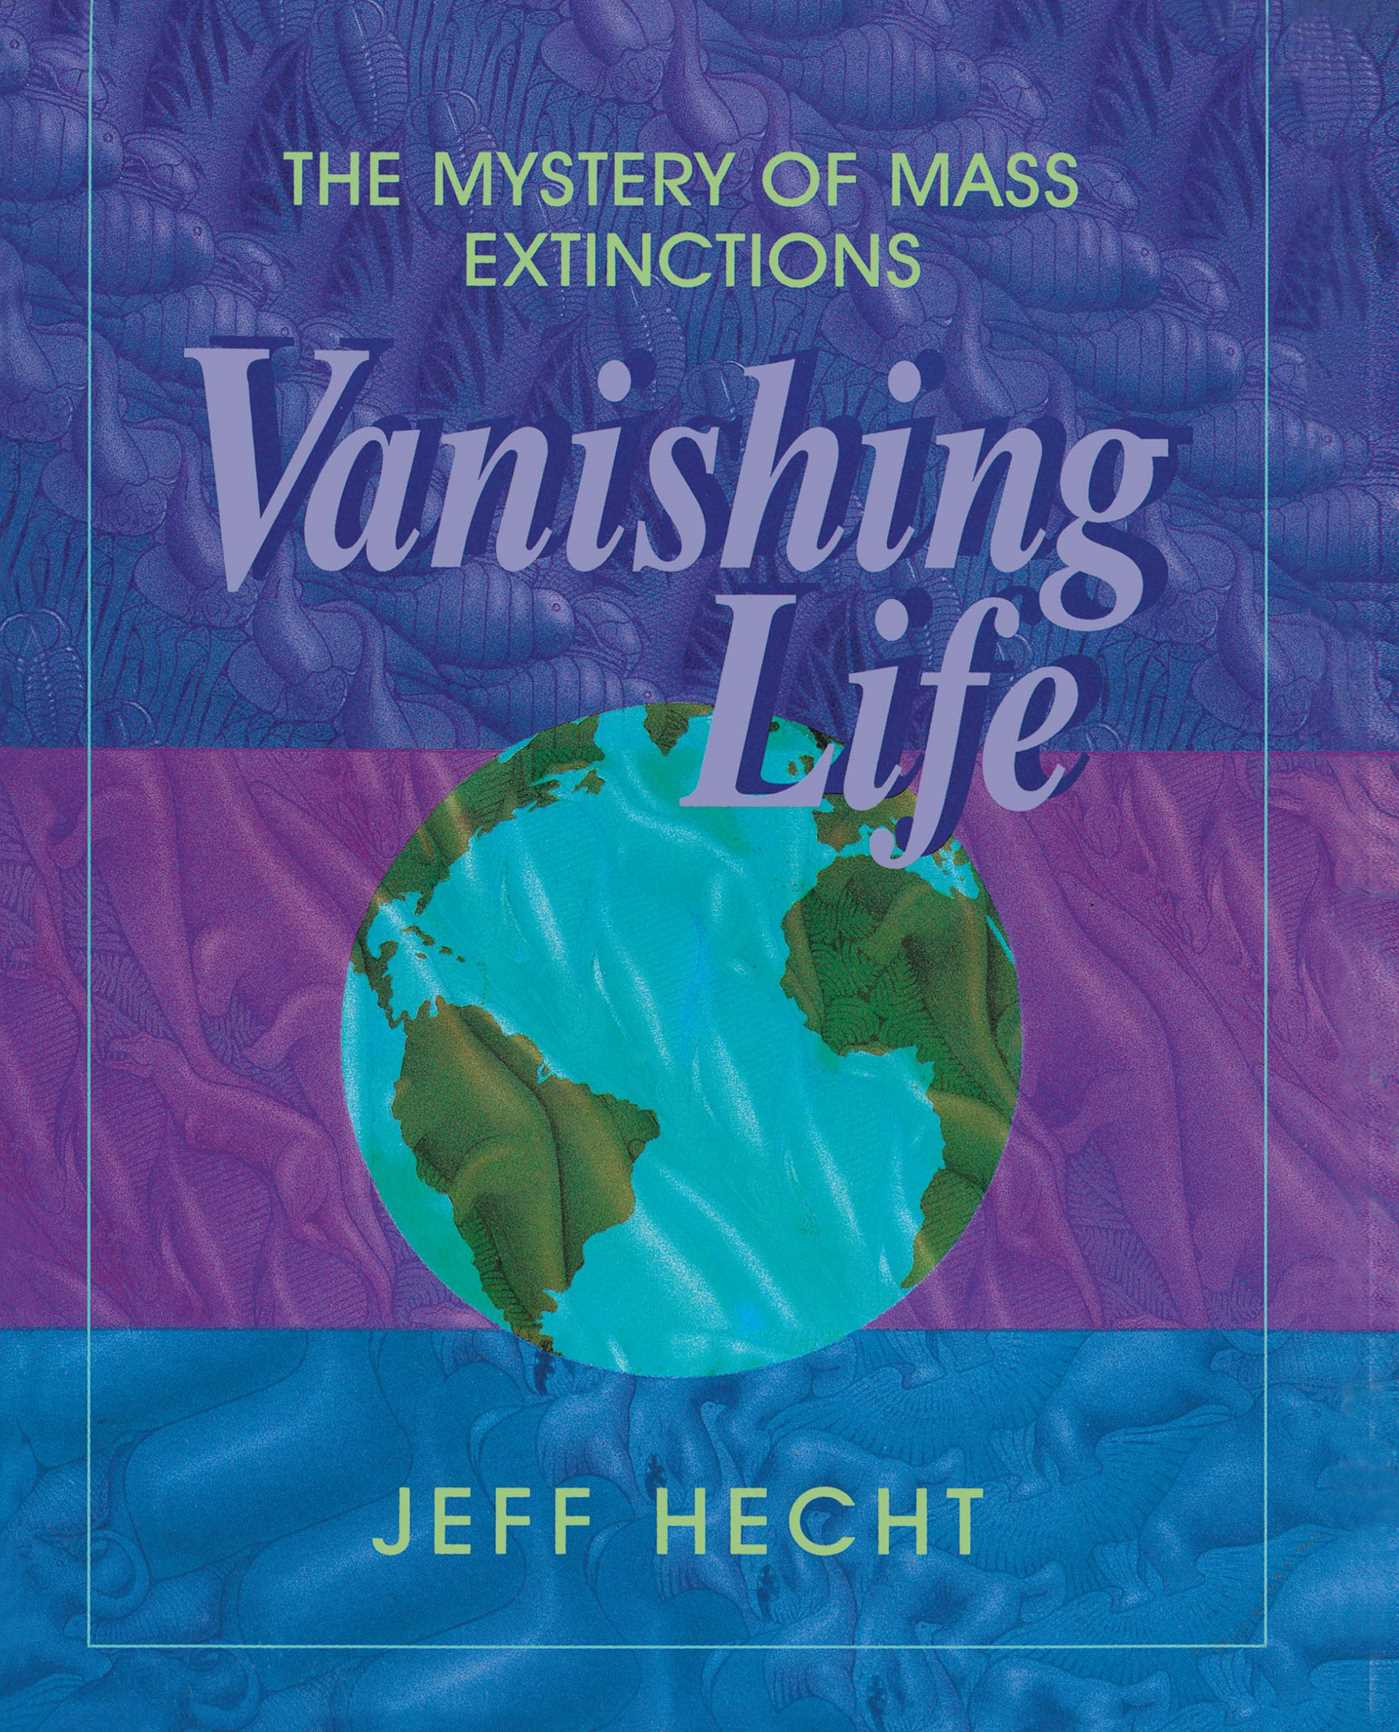 Vanishing-life-9781416994220_hr